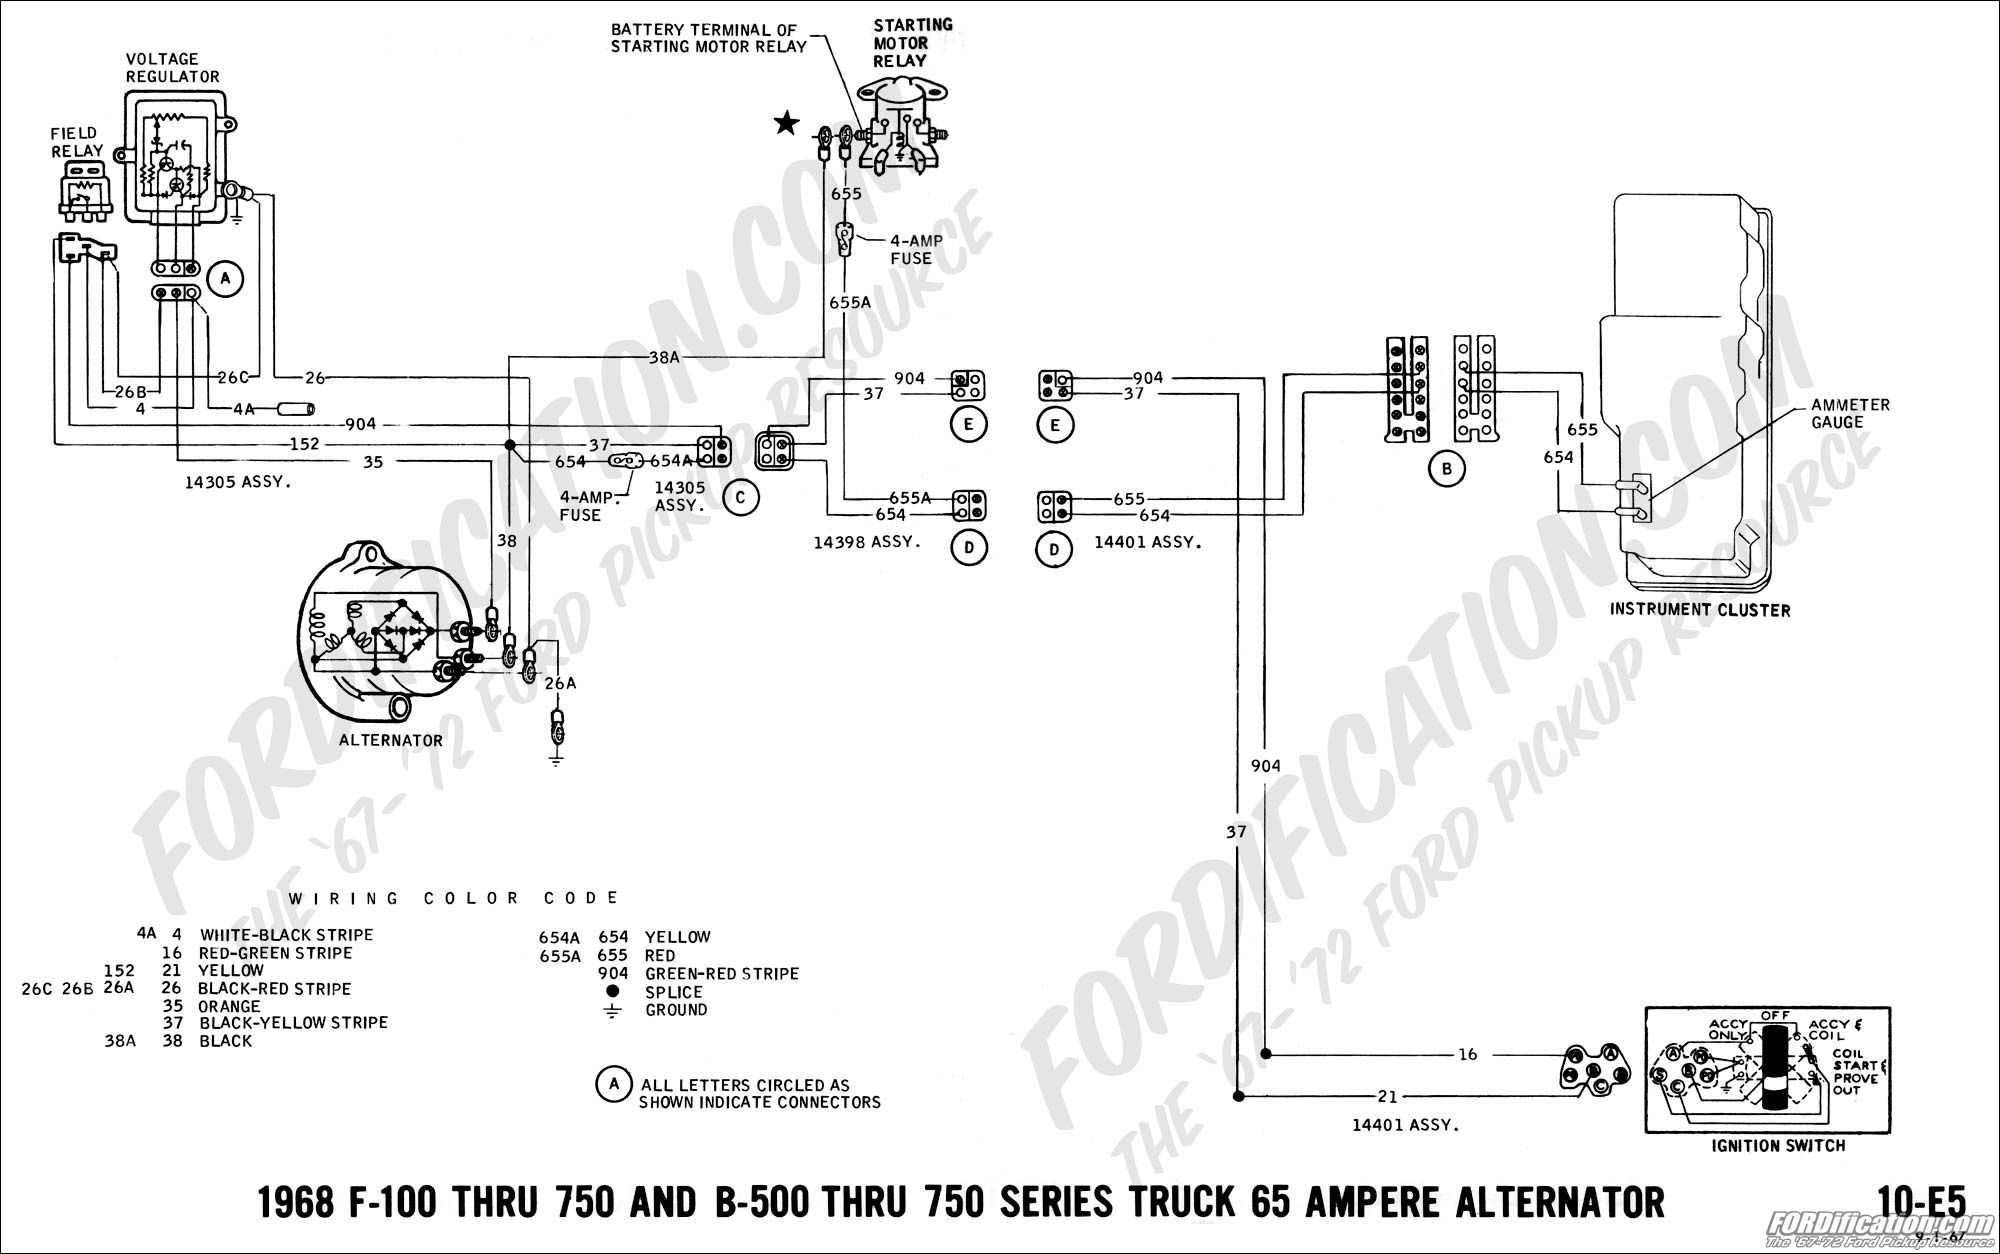 small resolution of 1669 f150 wiring diagram wiring diagram pass 1669 f150 wiring diagram